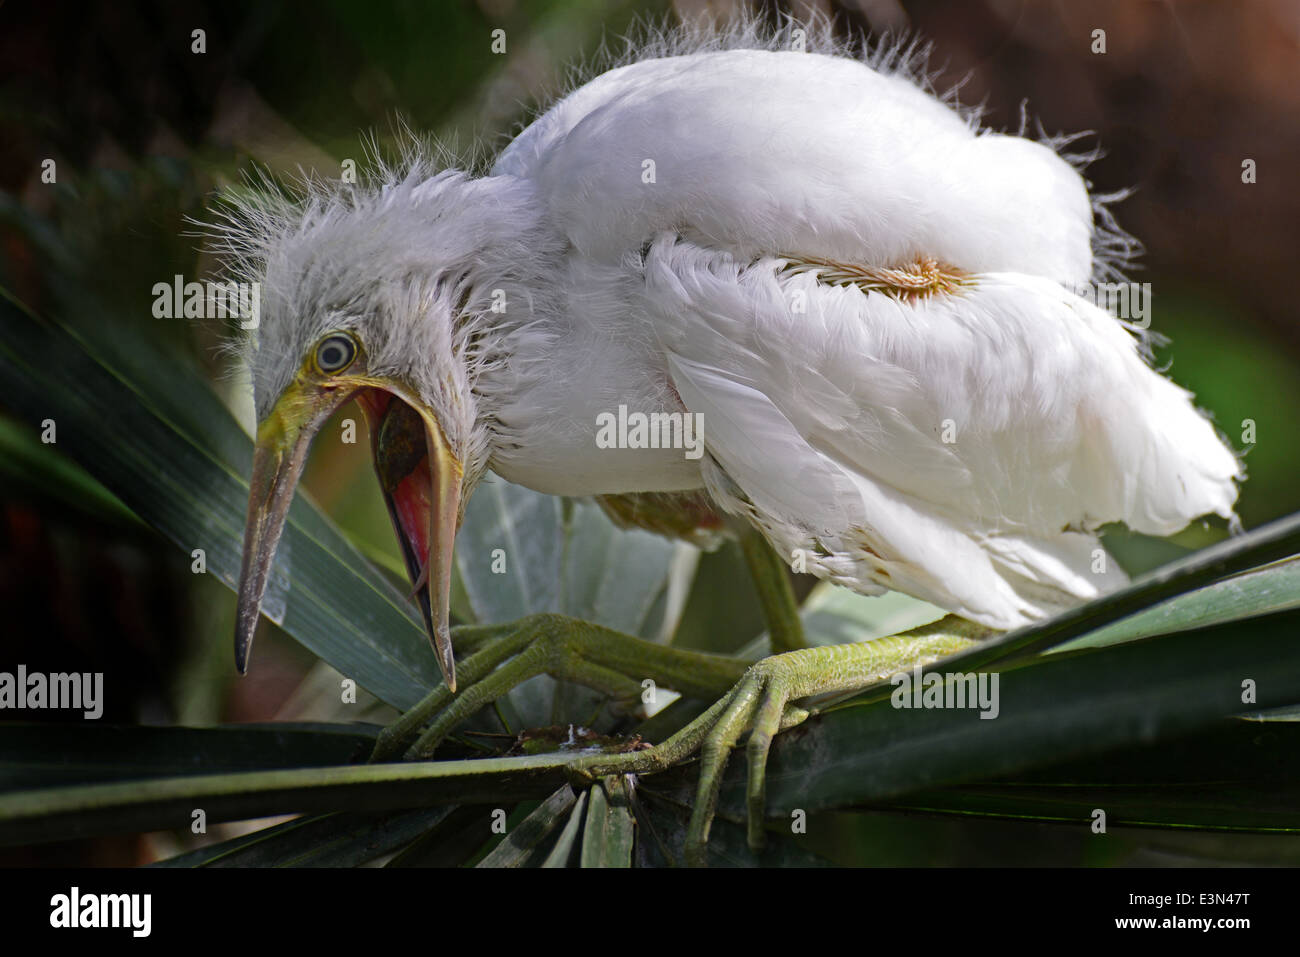 An egret chick squawks loudly on being pushed out of its nest - Stock Image